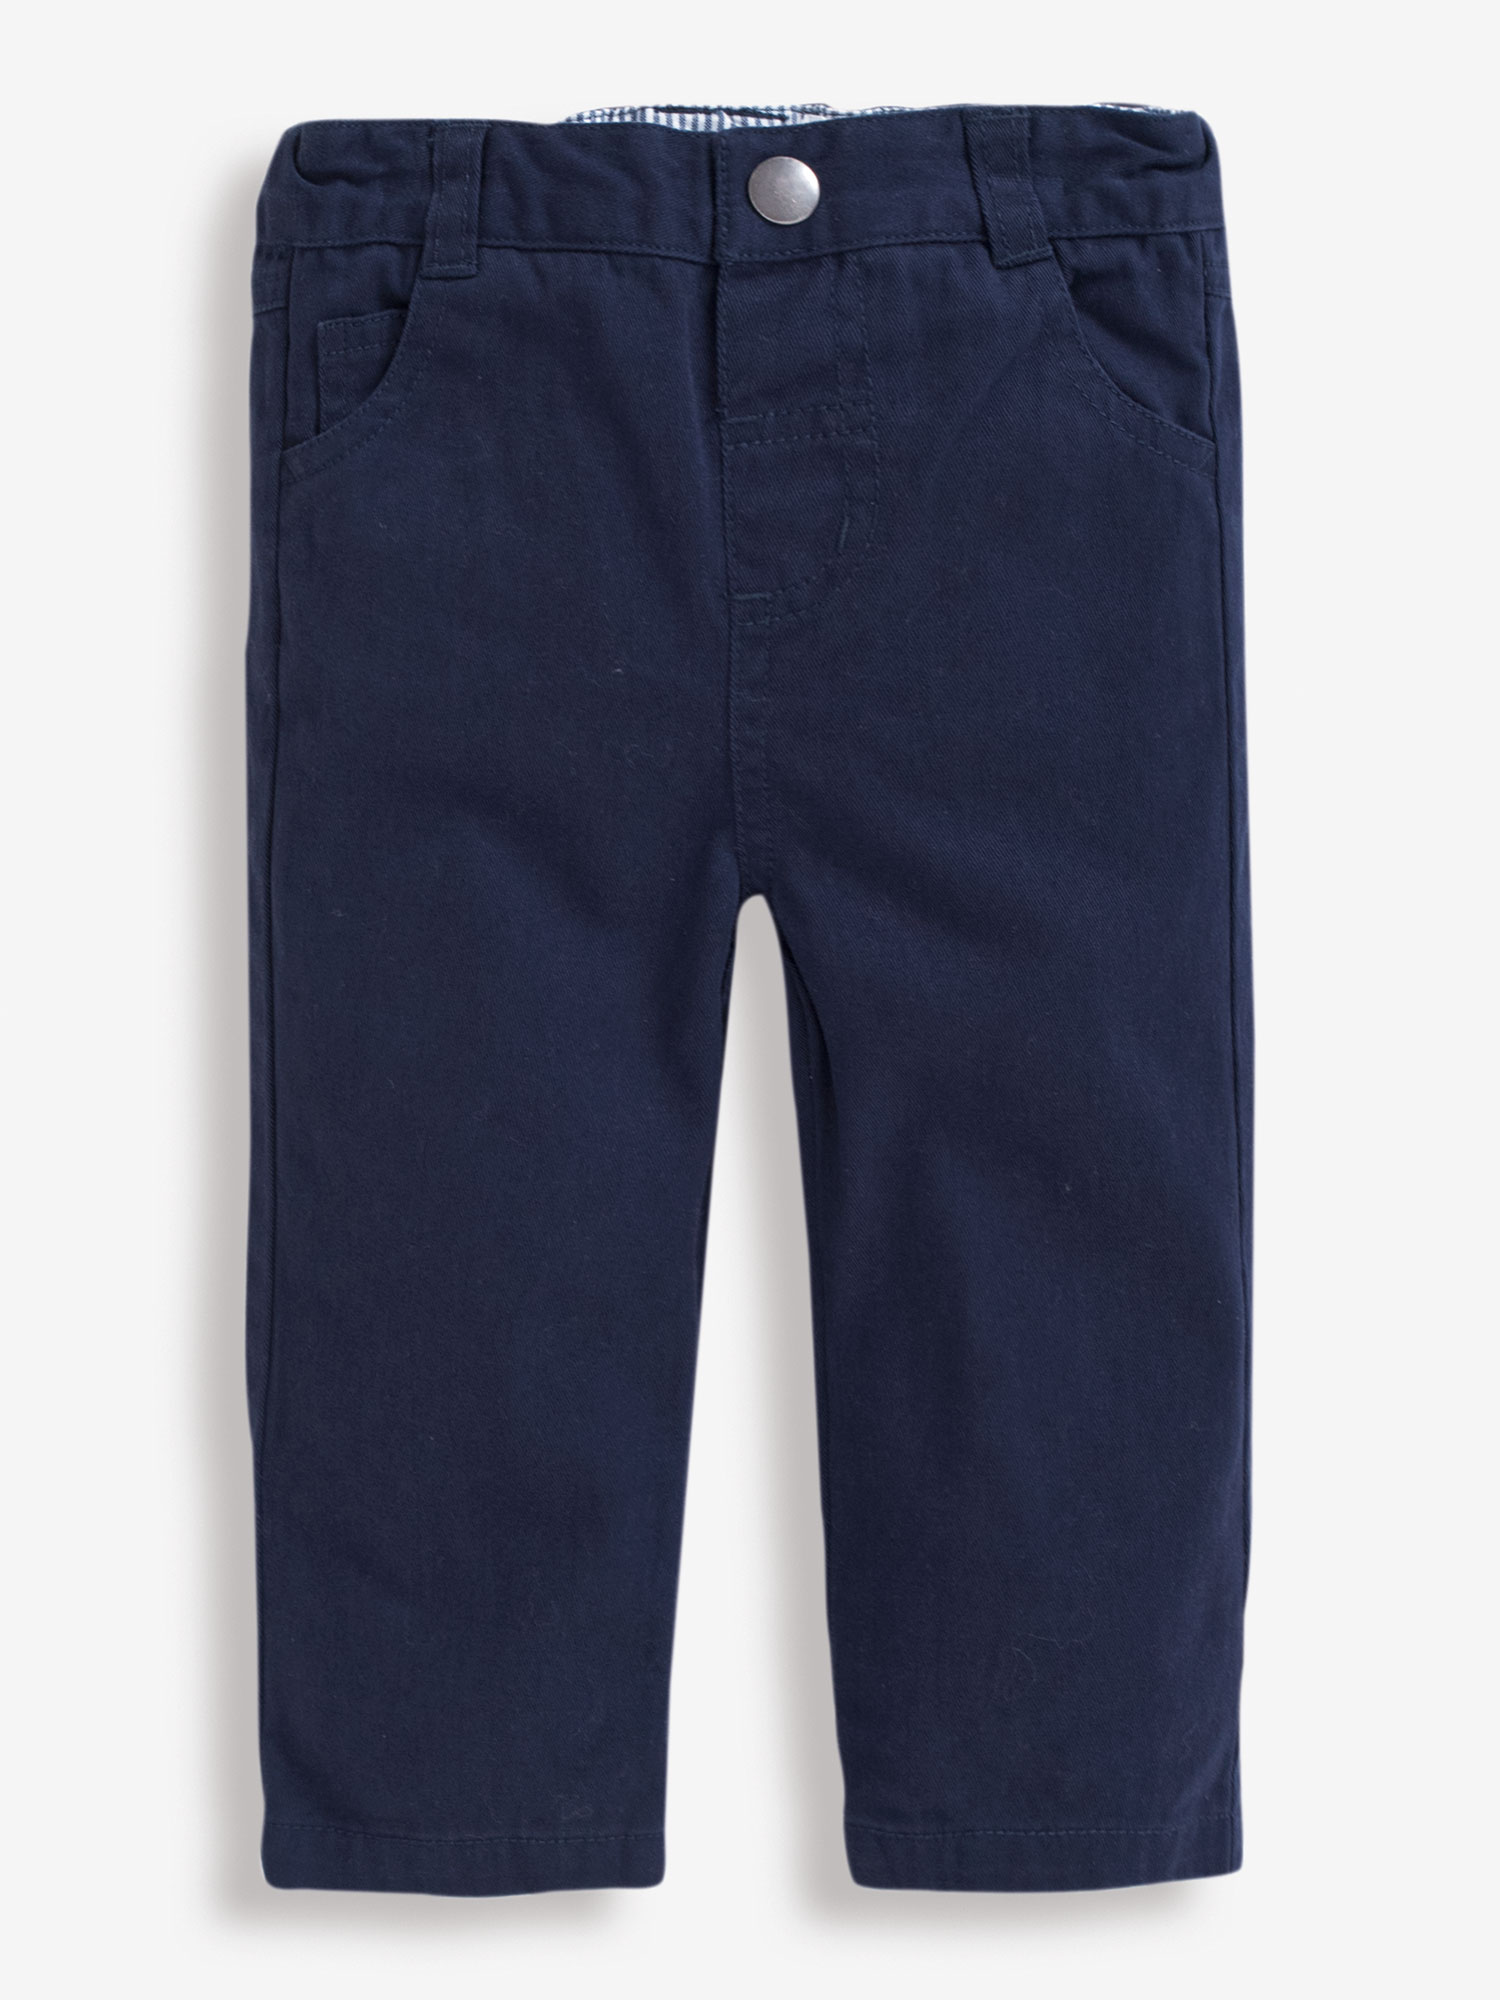 Boys' Navy Straight Leg Twill Trousers